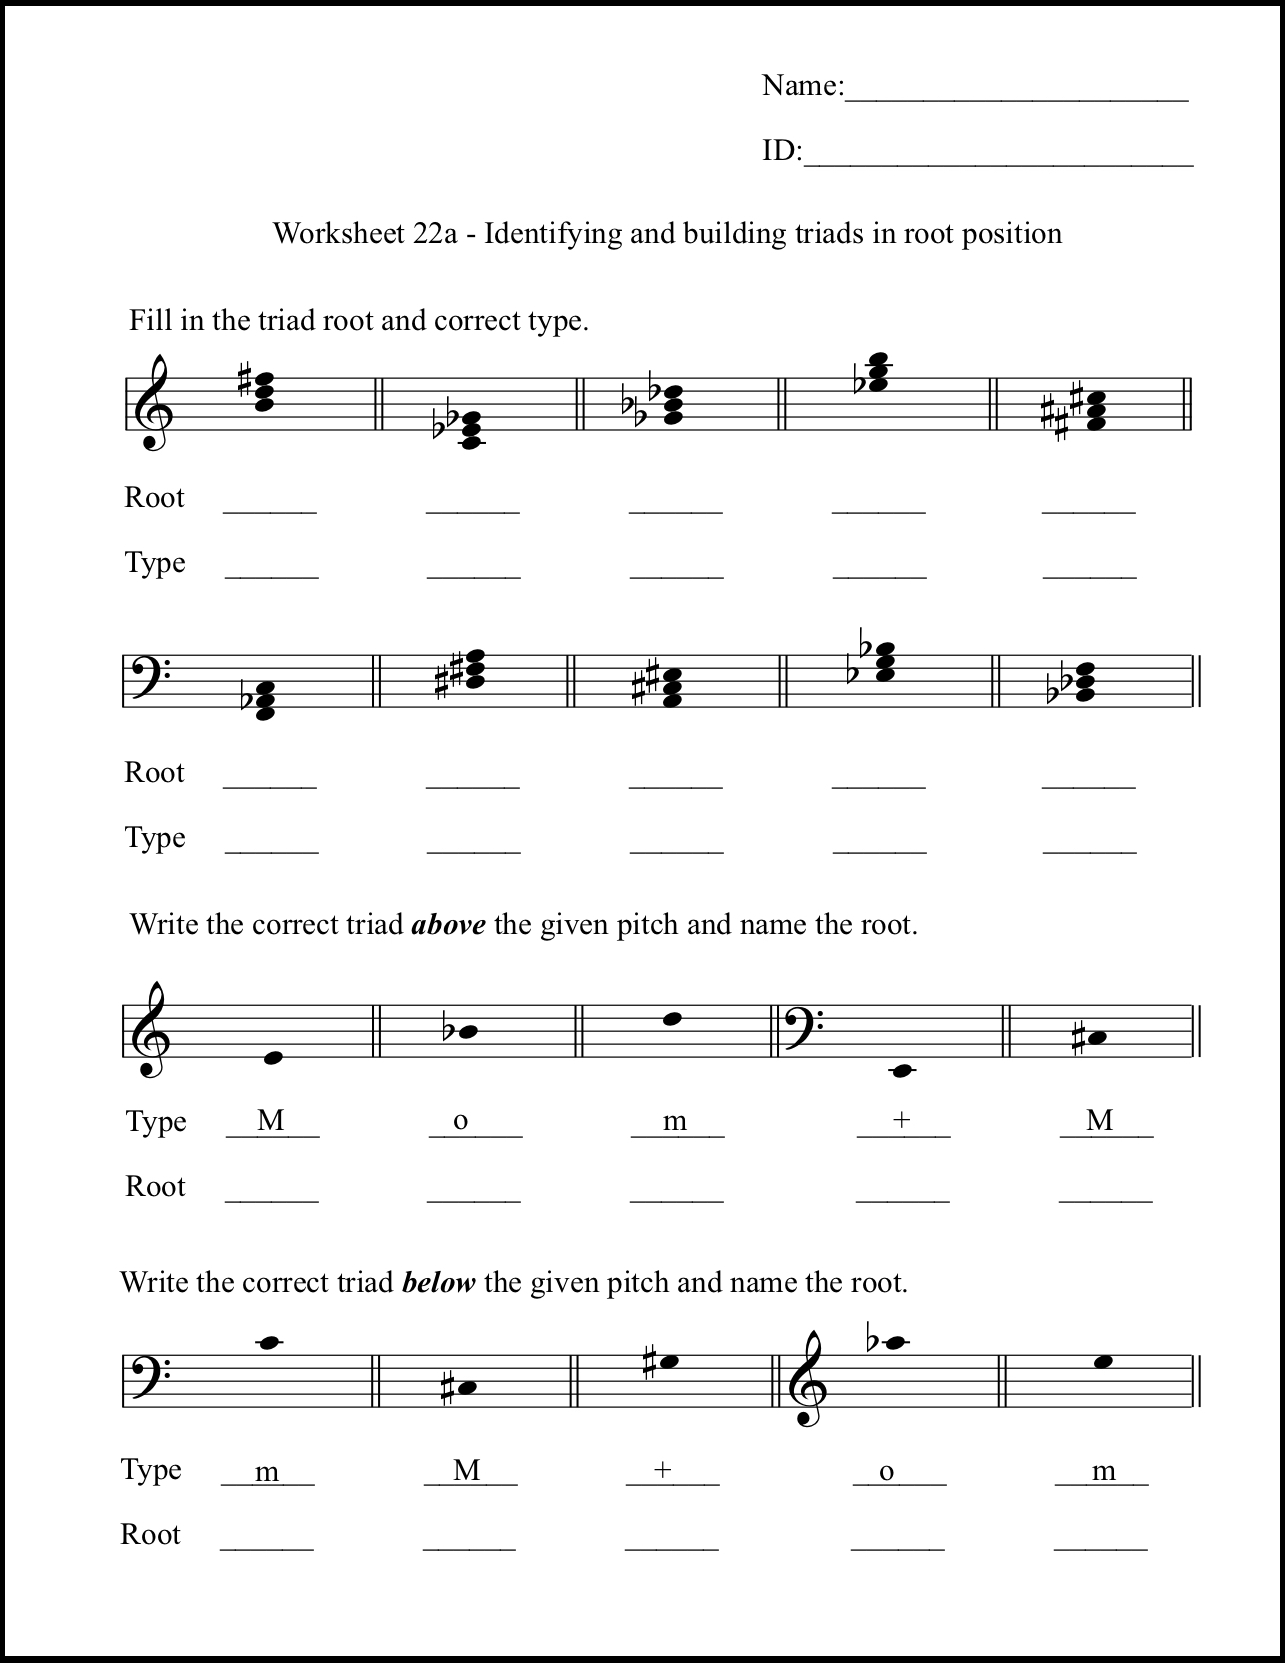 The Sound Of Music Worksheet Answers